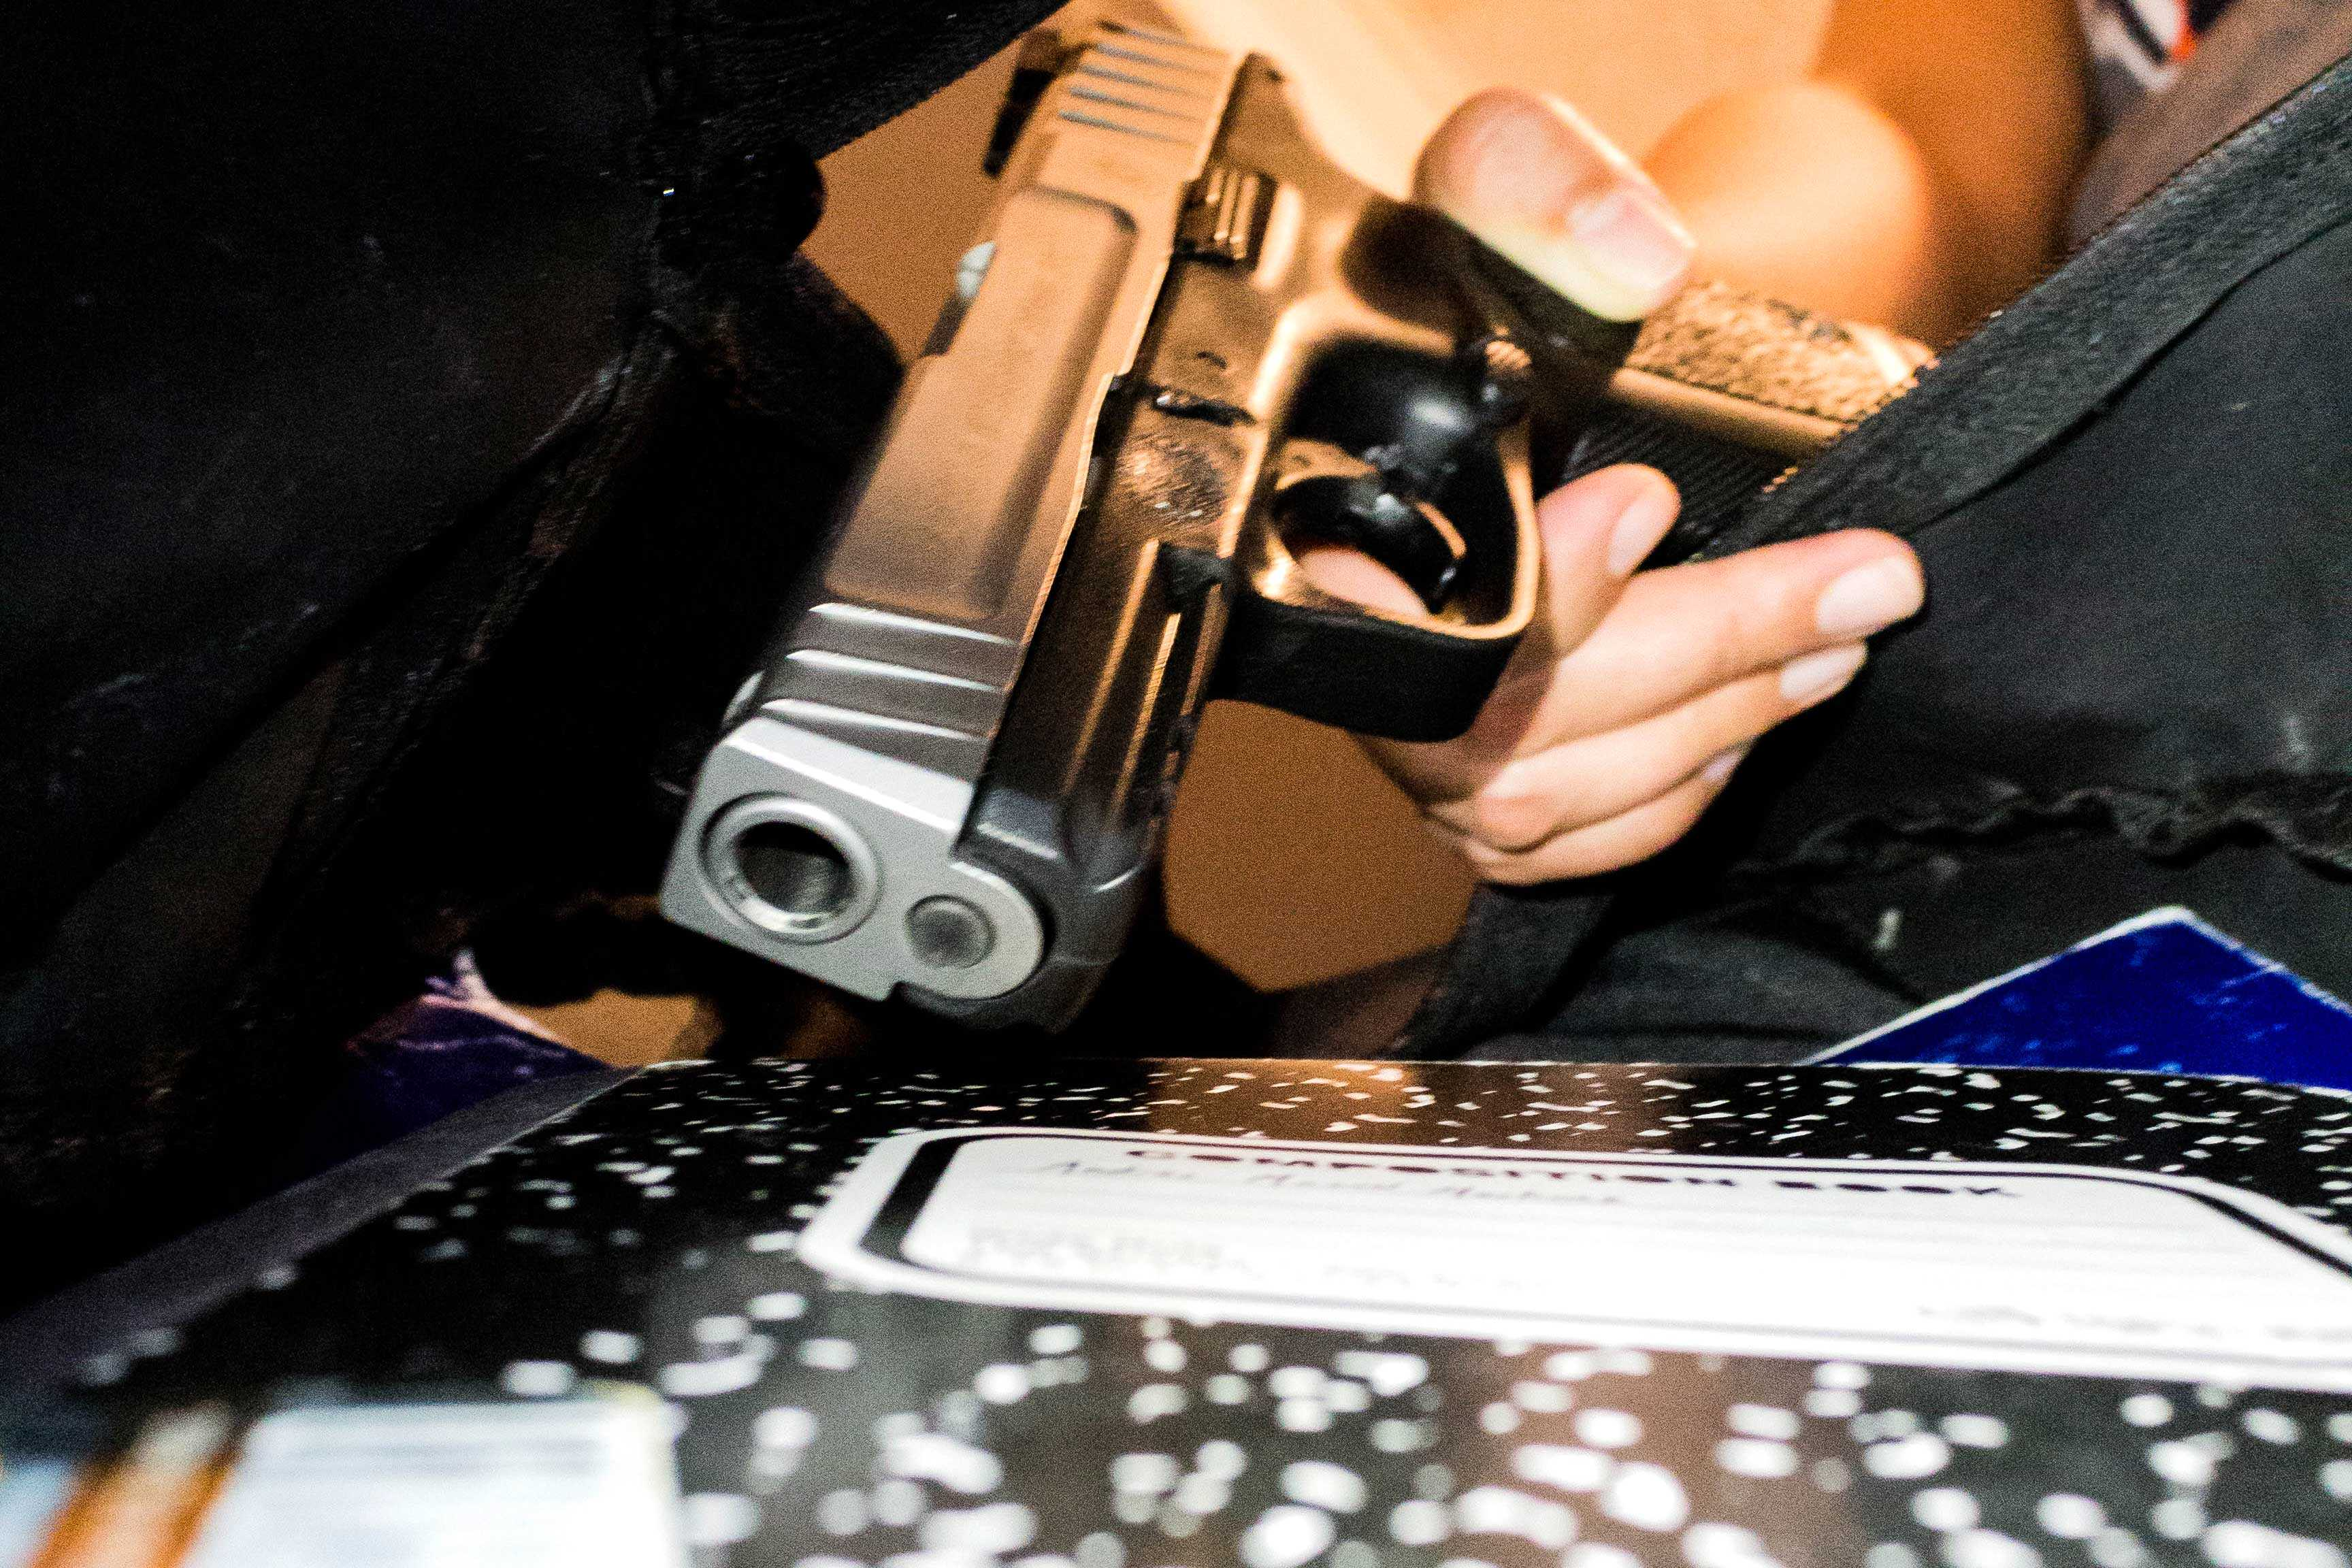 On Aug.1, UTEP will officially be a concealed carry campus.